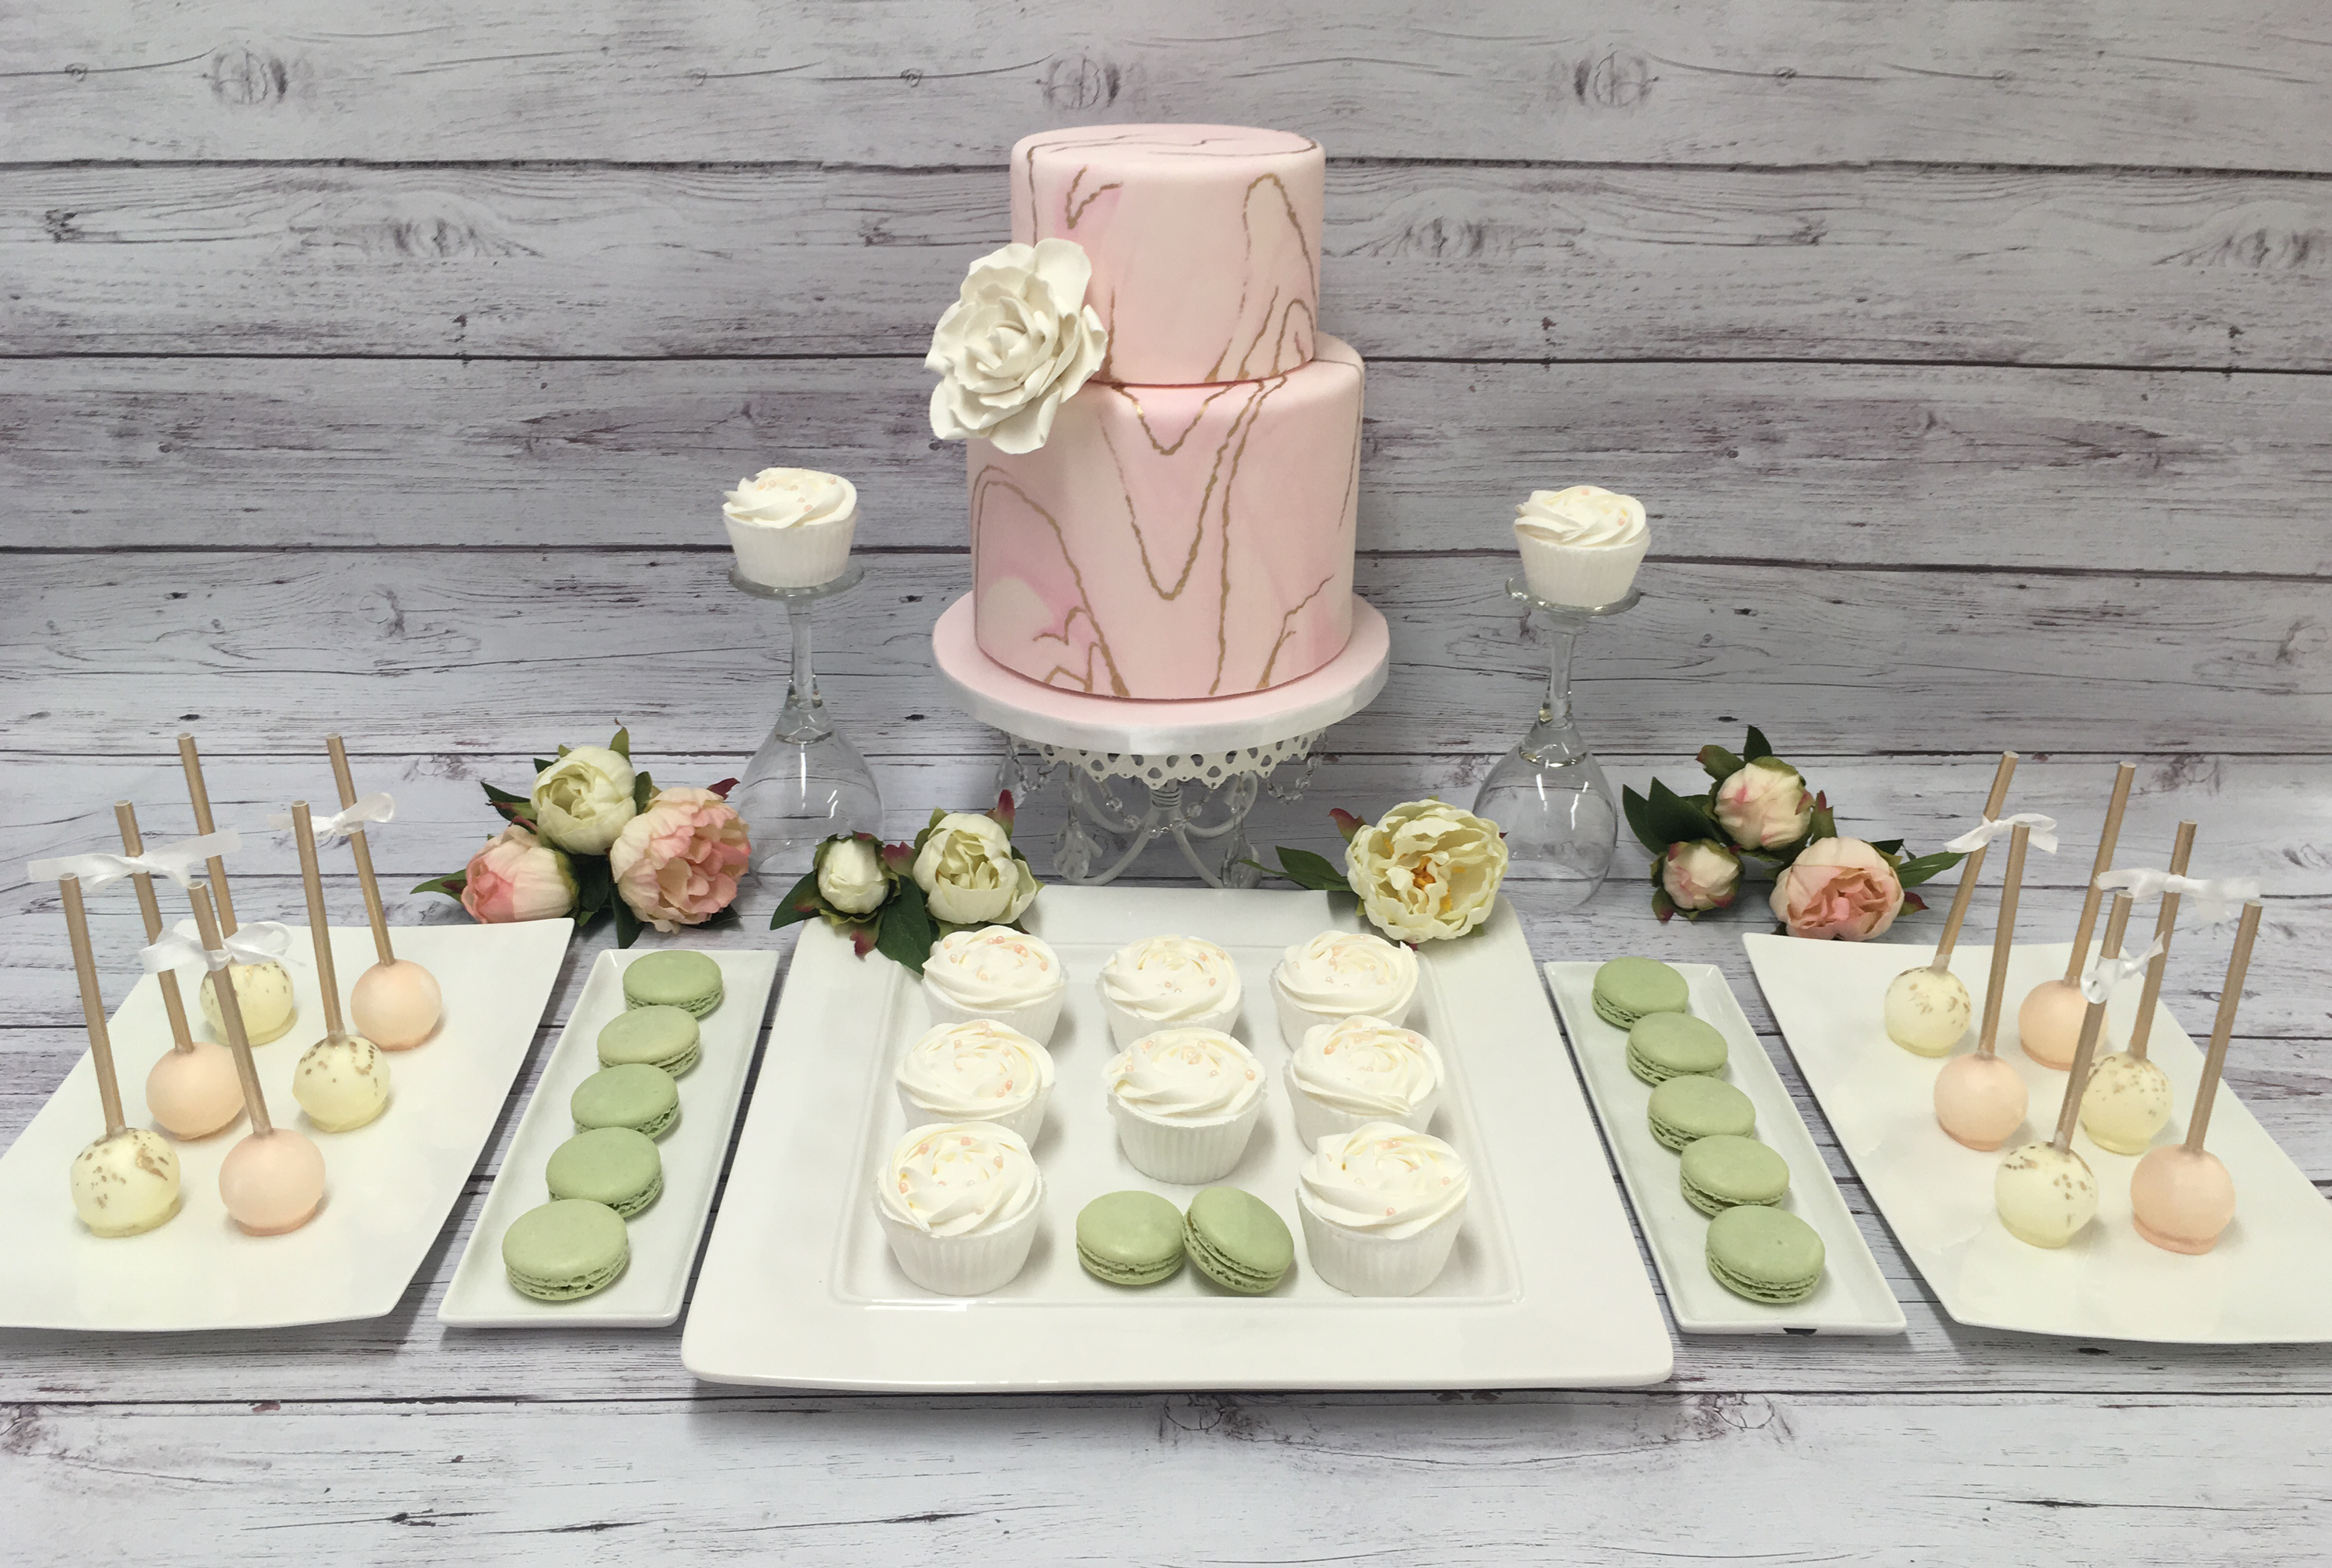 Handcrafted Cakes & Sweets For All Occasions!